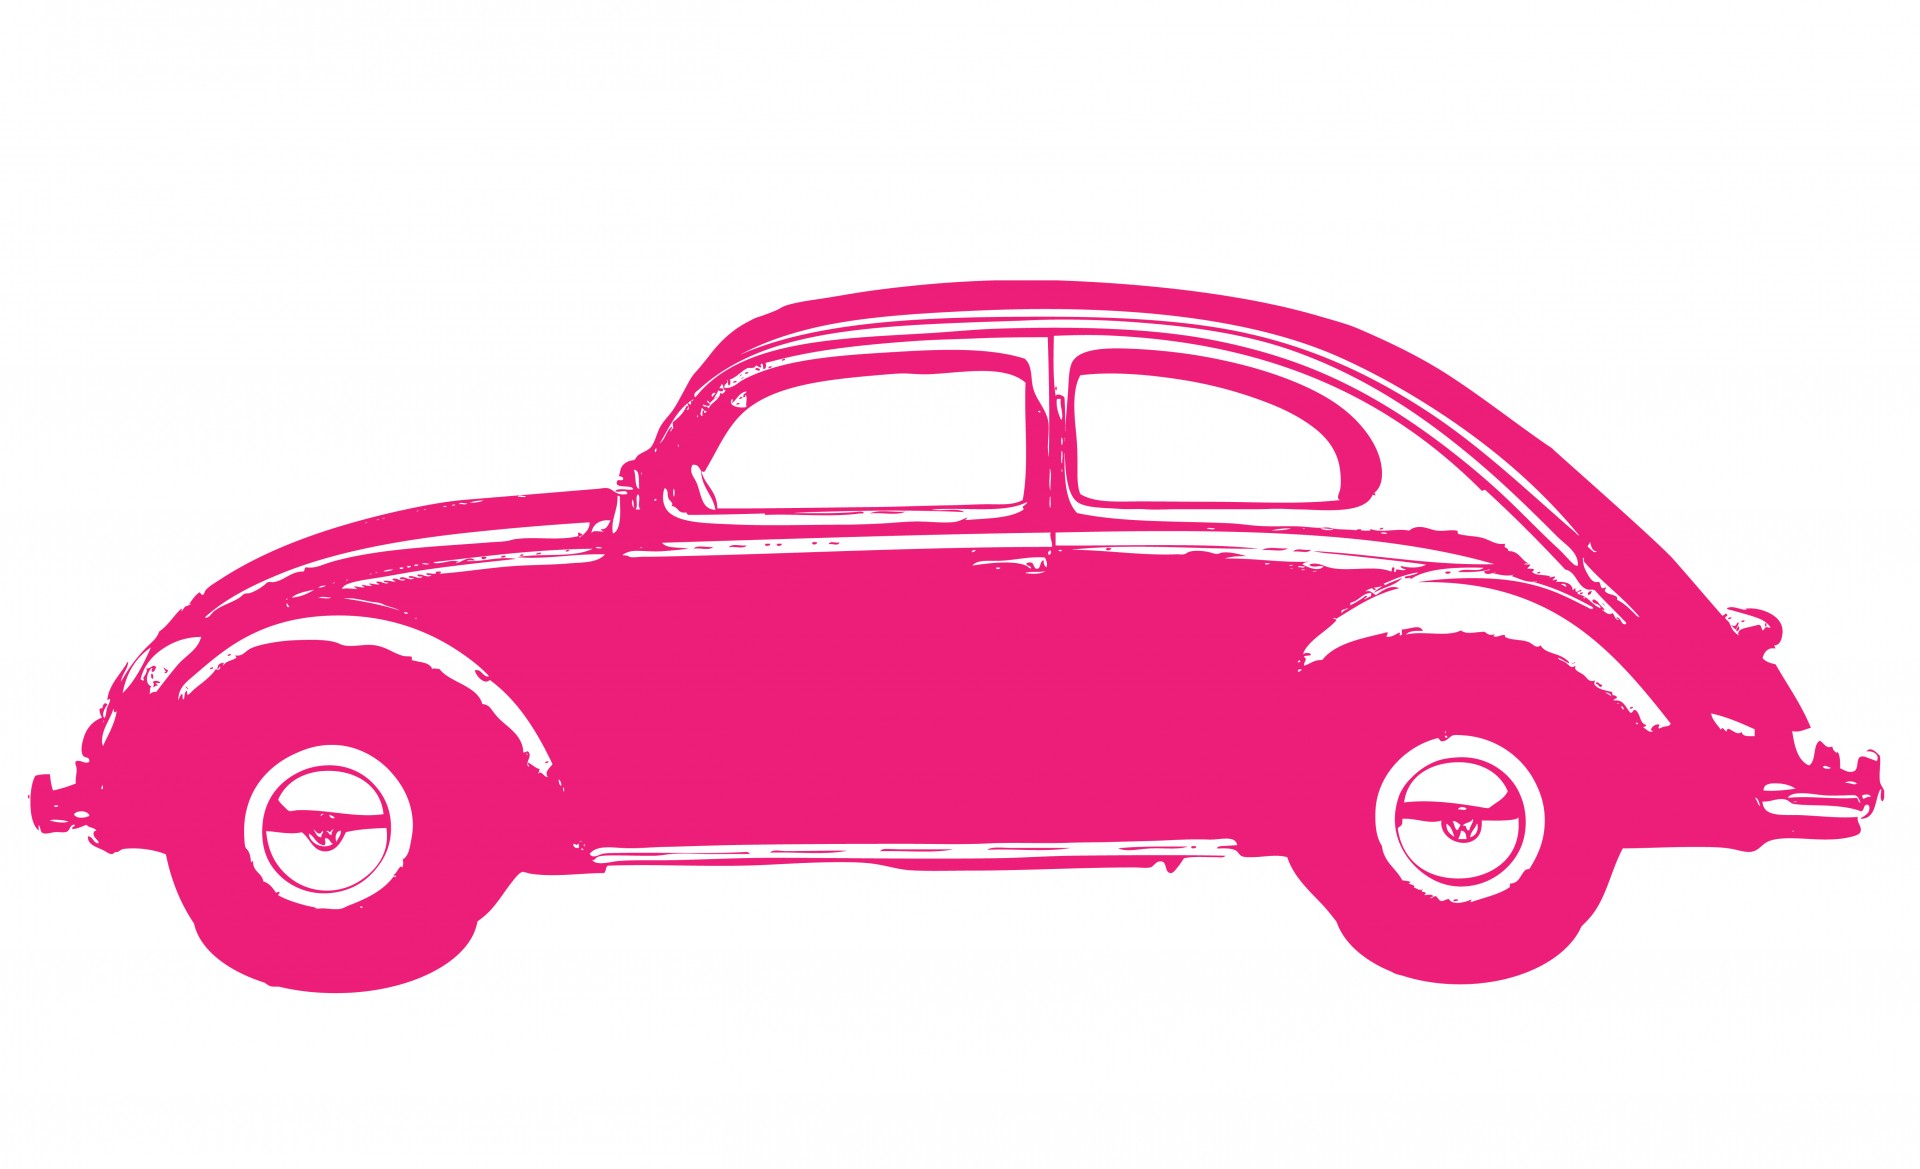 You May Show Original Images And Post About Classic Car Clip Art In